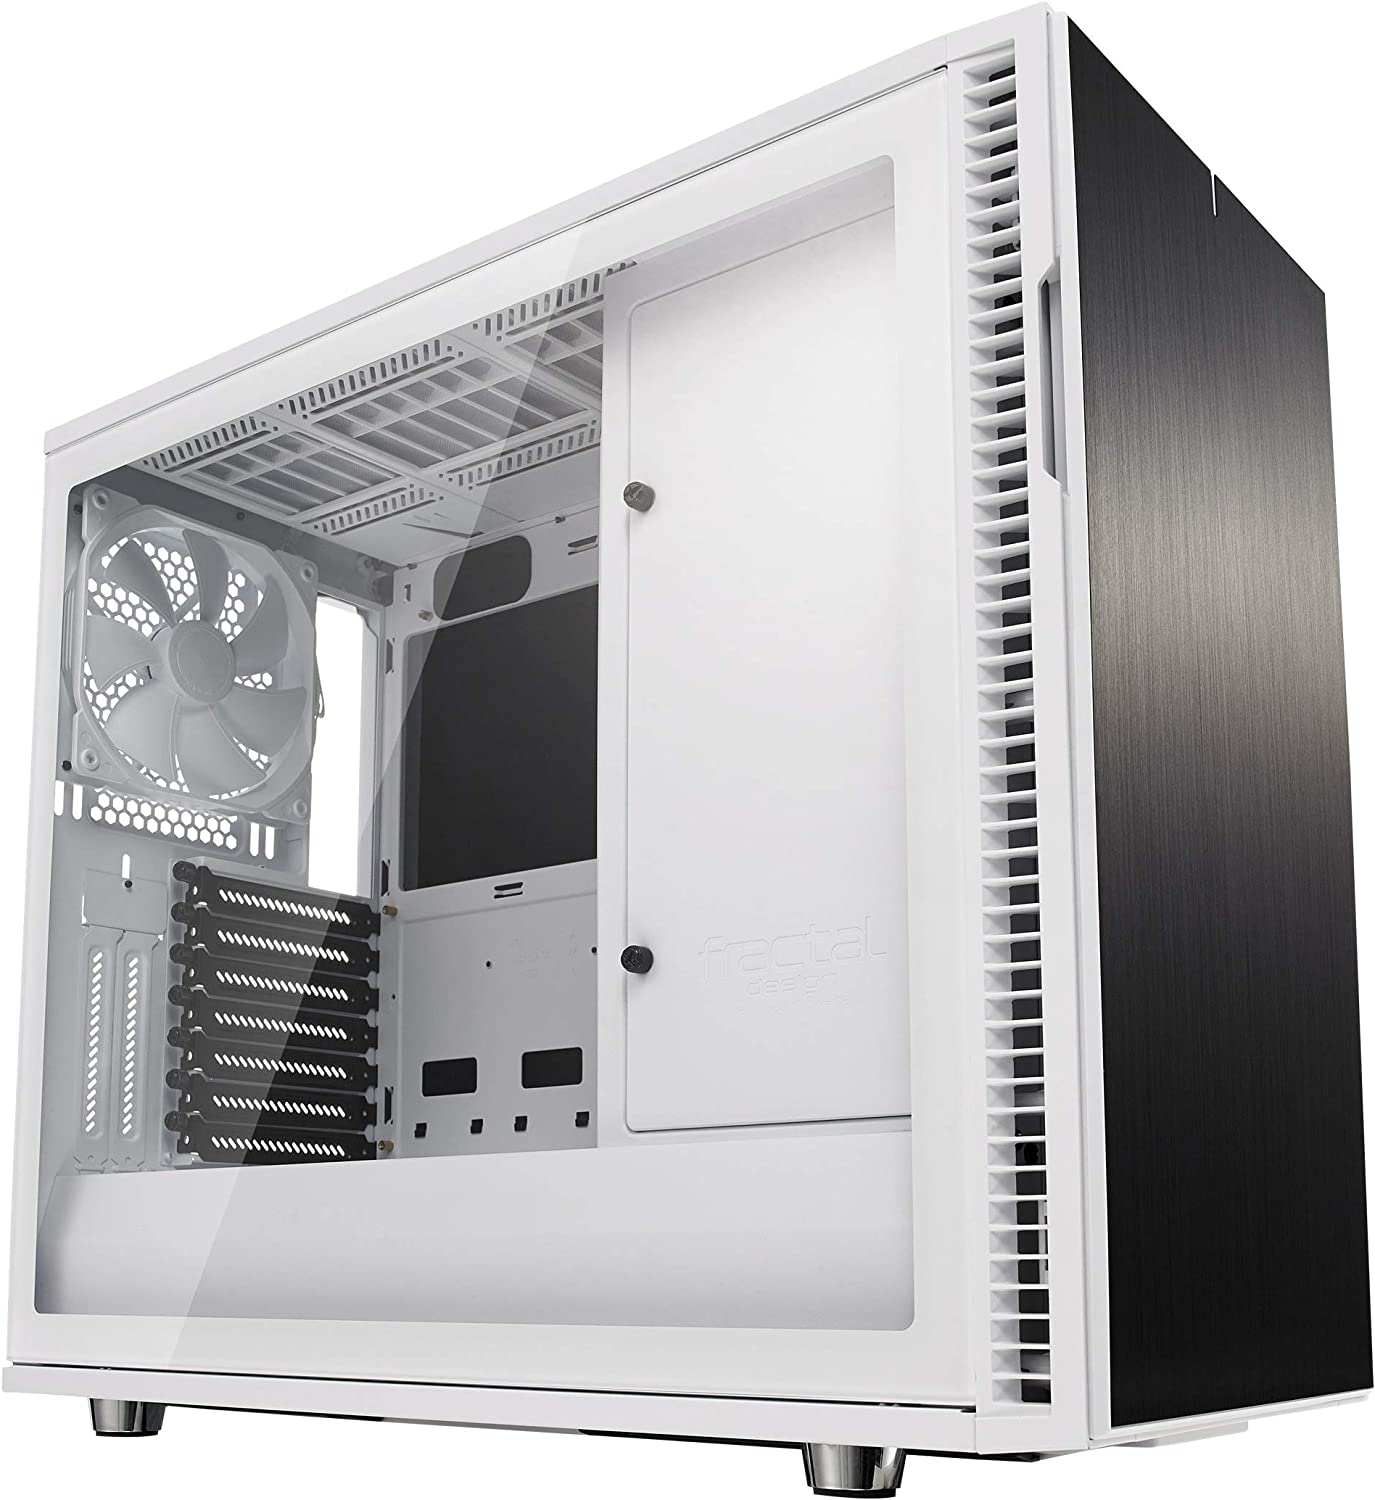 Fractal Design Define R6 USB-C - Mid Tower Computer Case - ATX - Optimized for High Airflow and Silent Computing with Moduvent Technology - Modular Interior - Water-Cooling Ready - White Tg